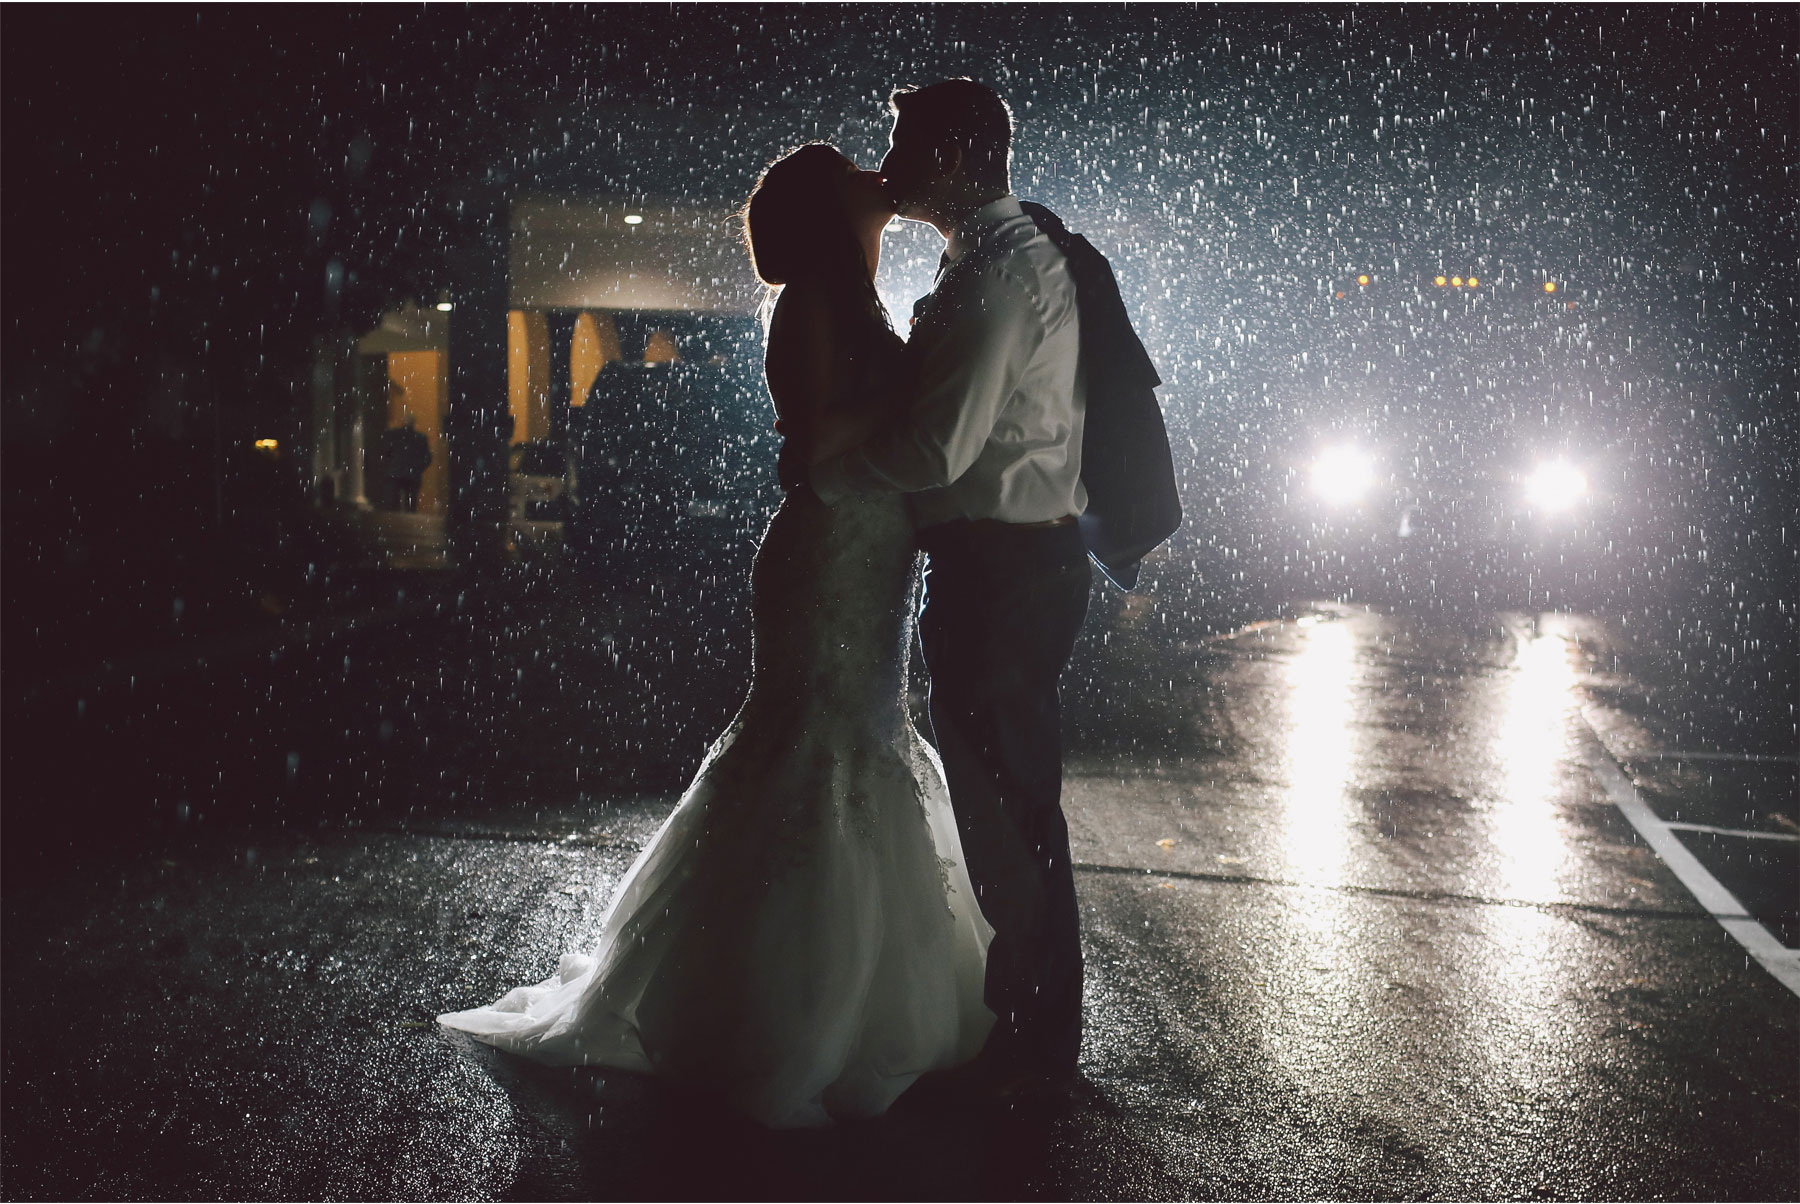 17-Minneapolis-Minnesota-Wedding-Photography-by-Vick-Photography-Lafayette-Club--Rain-Snow-Bride-and-Groom-Night-Photography-Jana-and-Matt.jpg